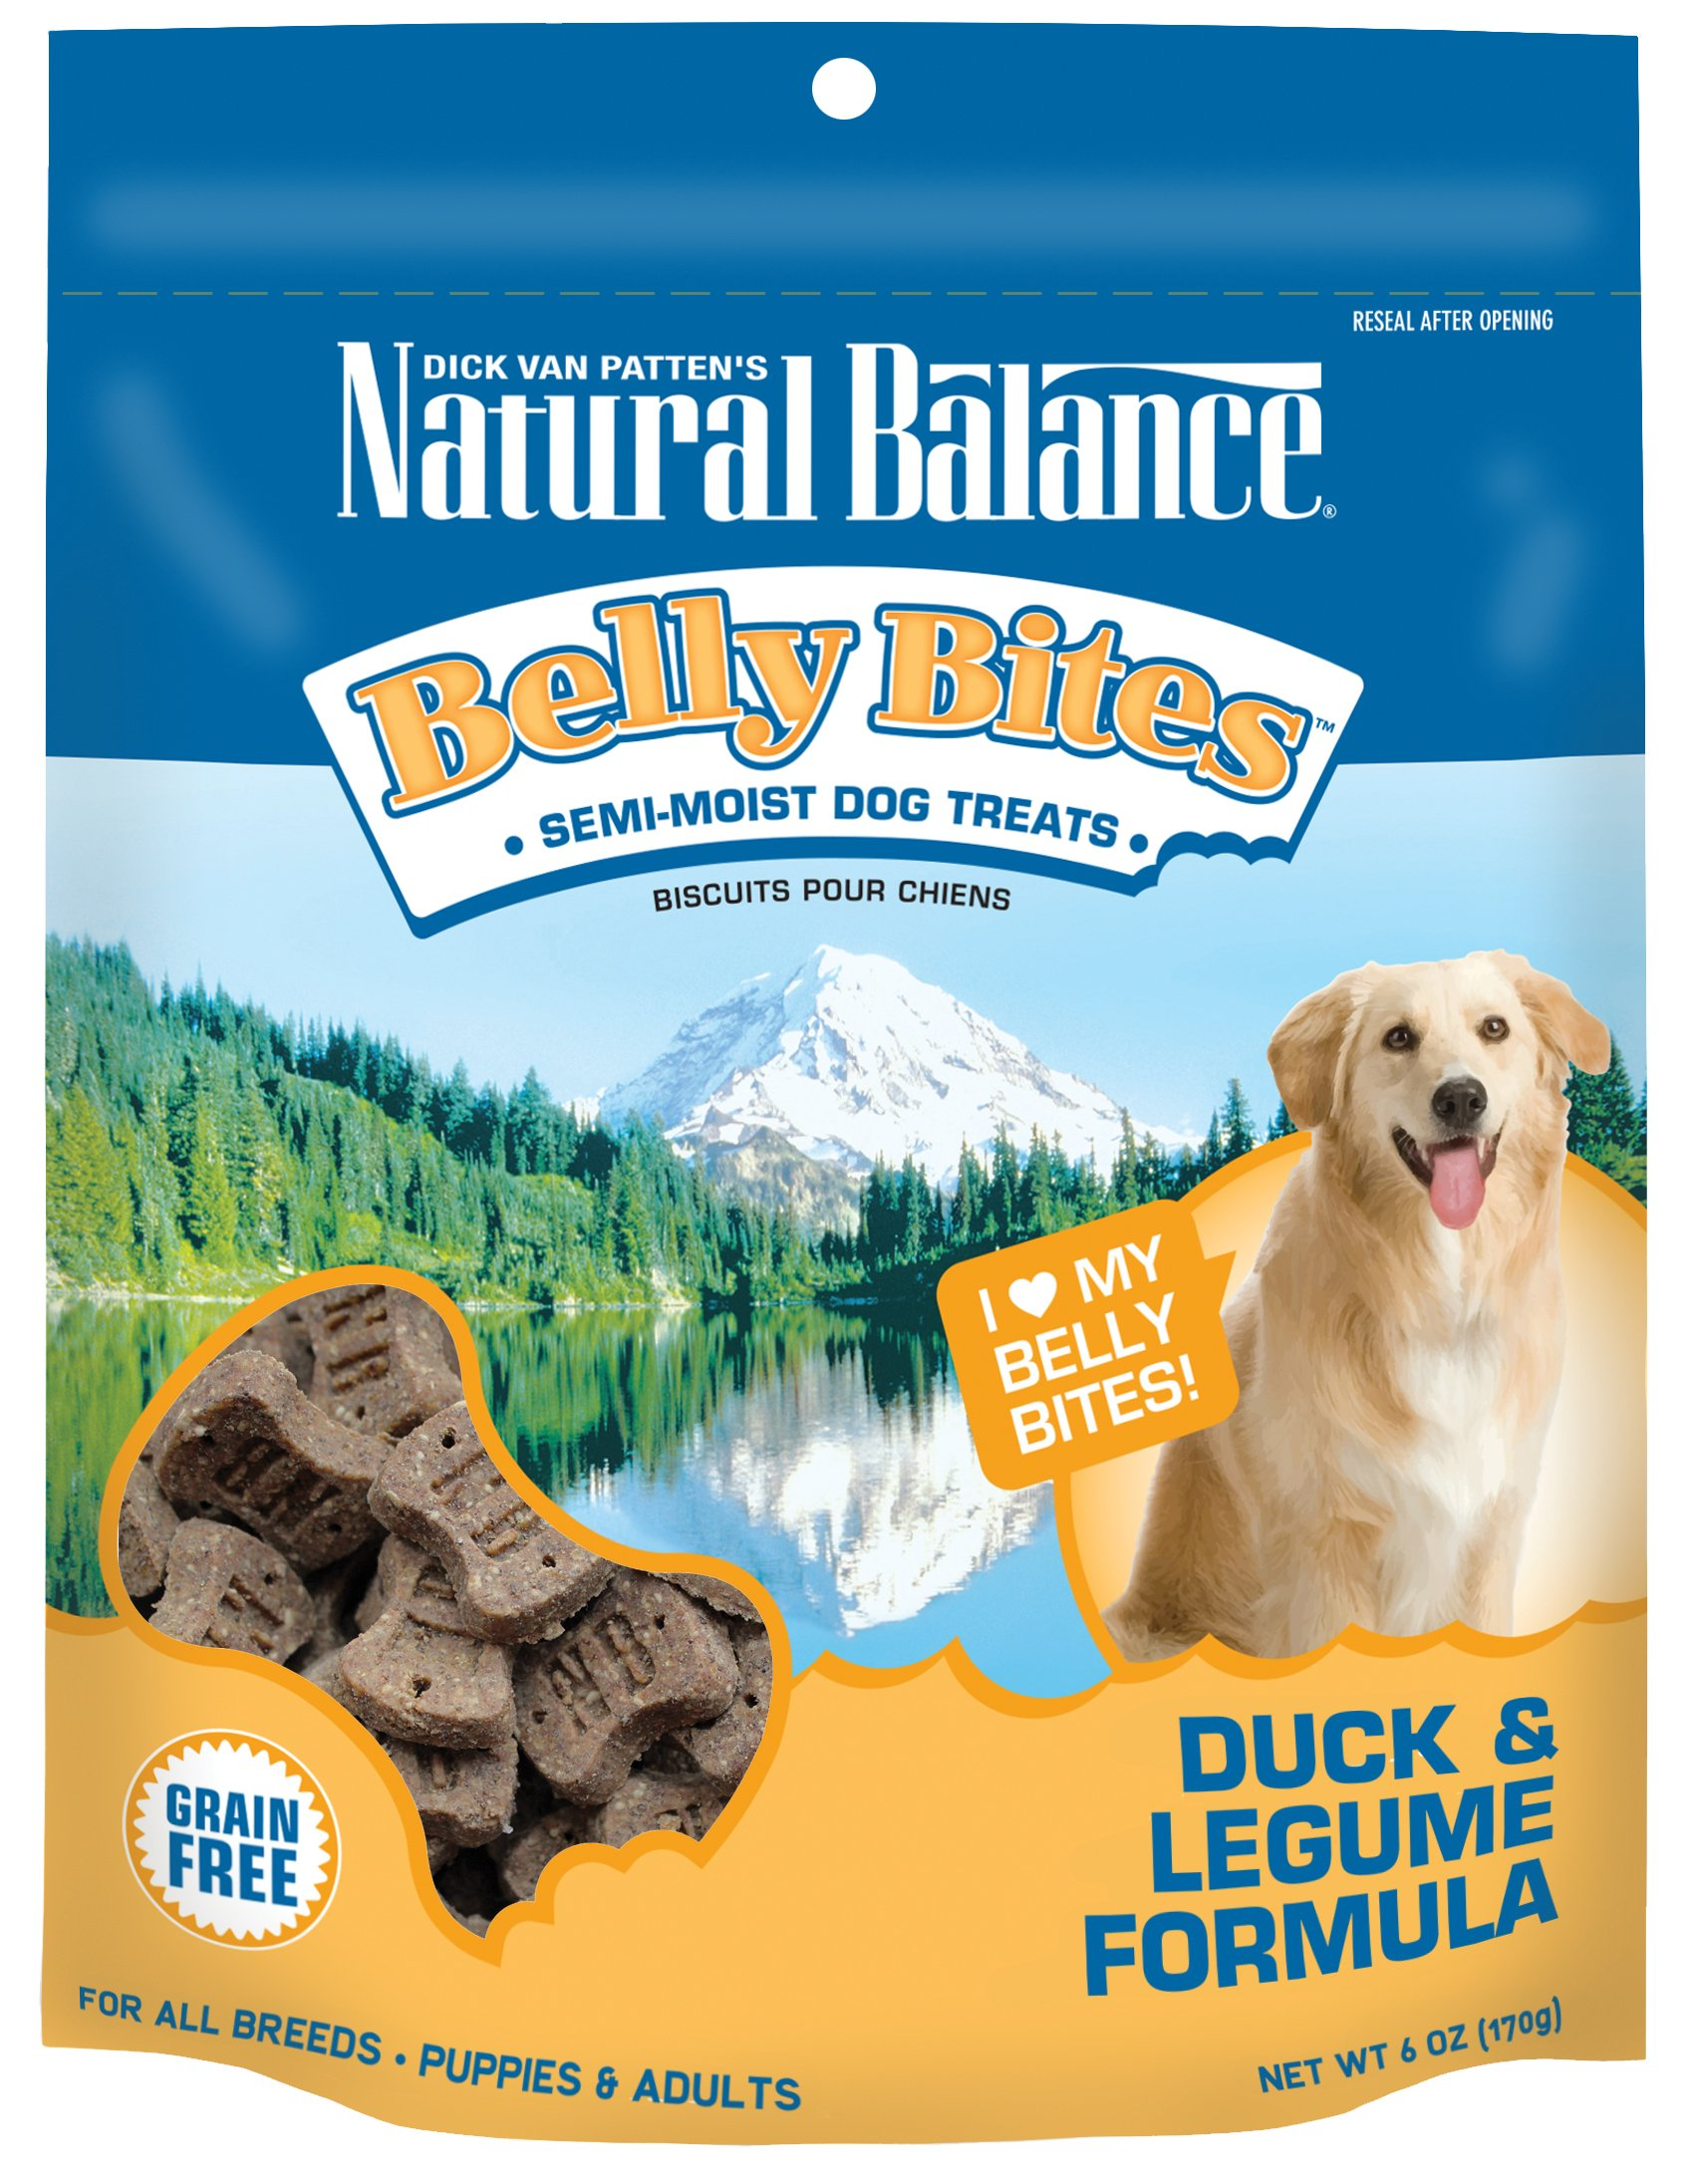 Is Natural Balance Dog Food Made In The Us